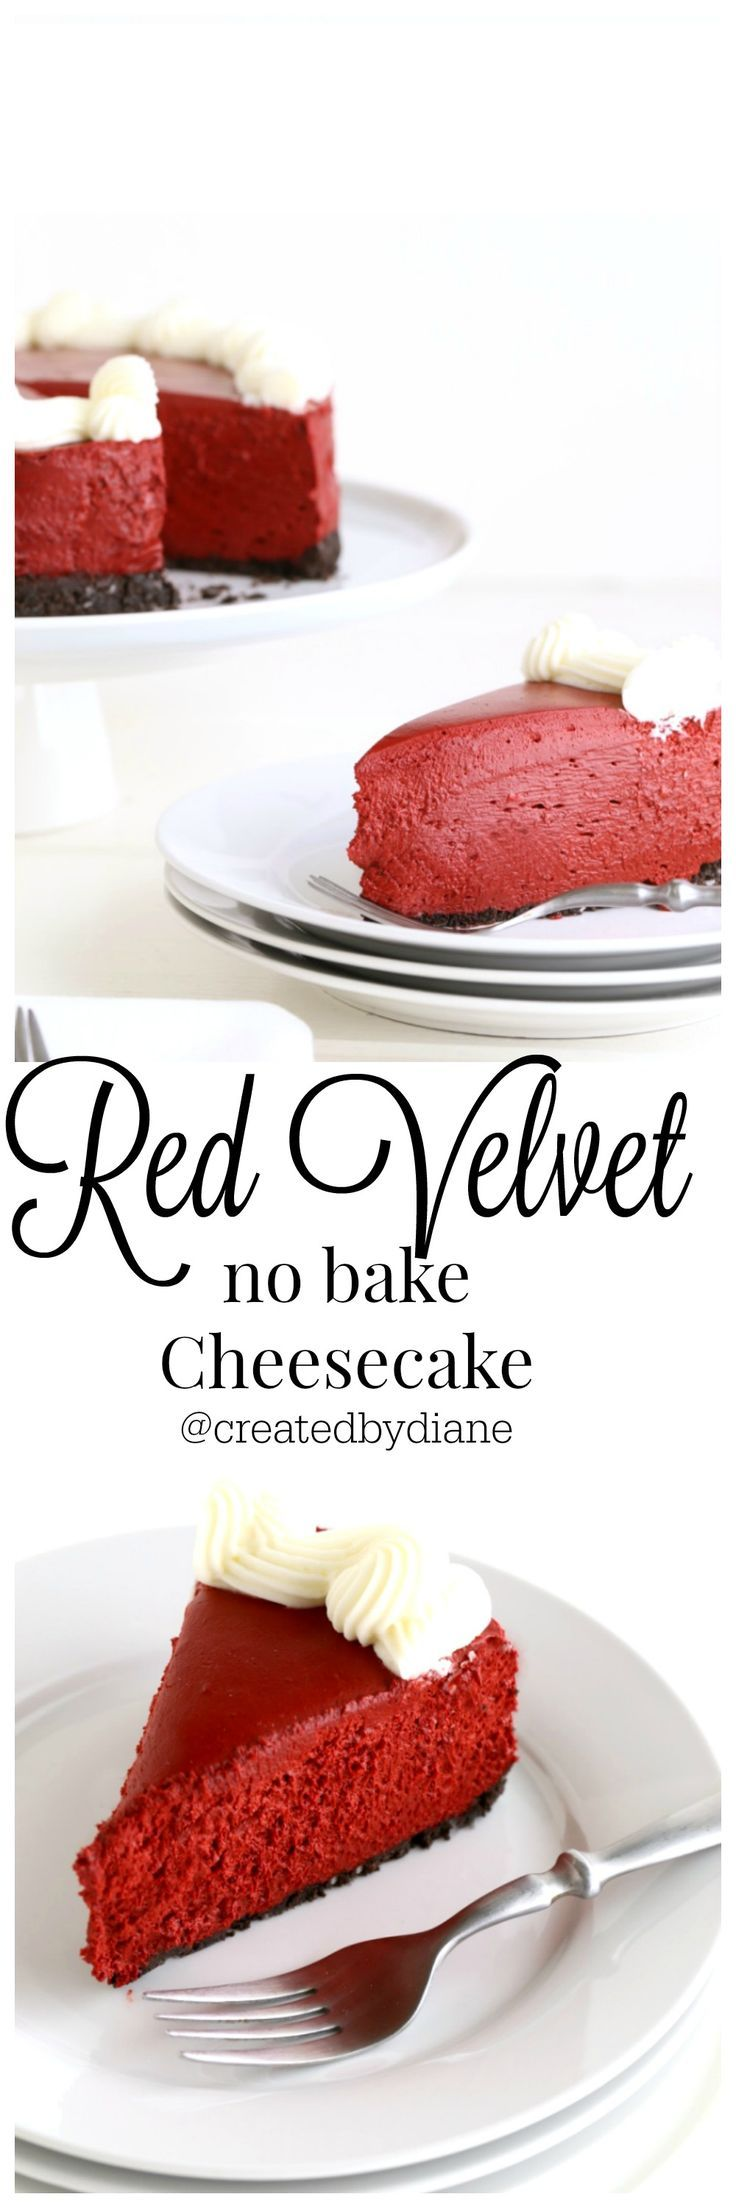 Red Velvet no bake Cheesecake from  /createdbydiane/